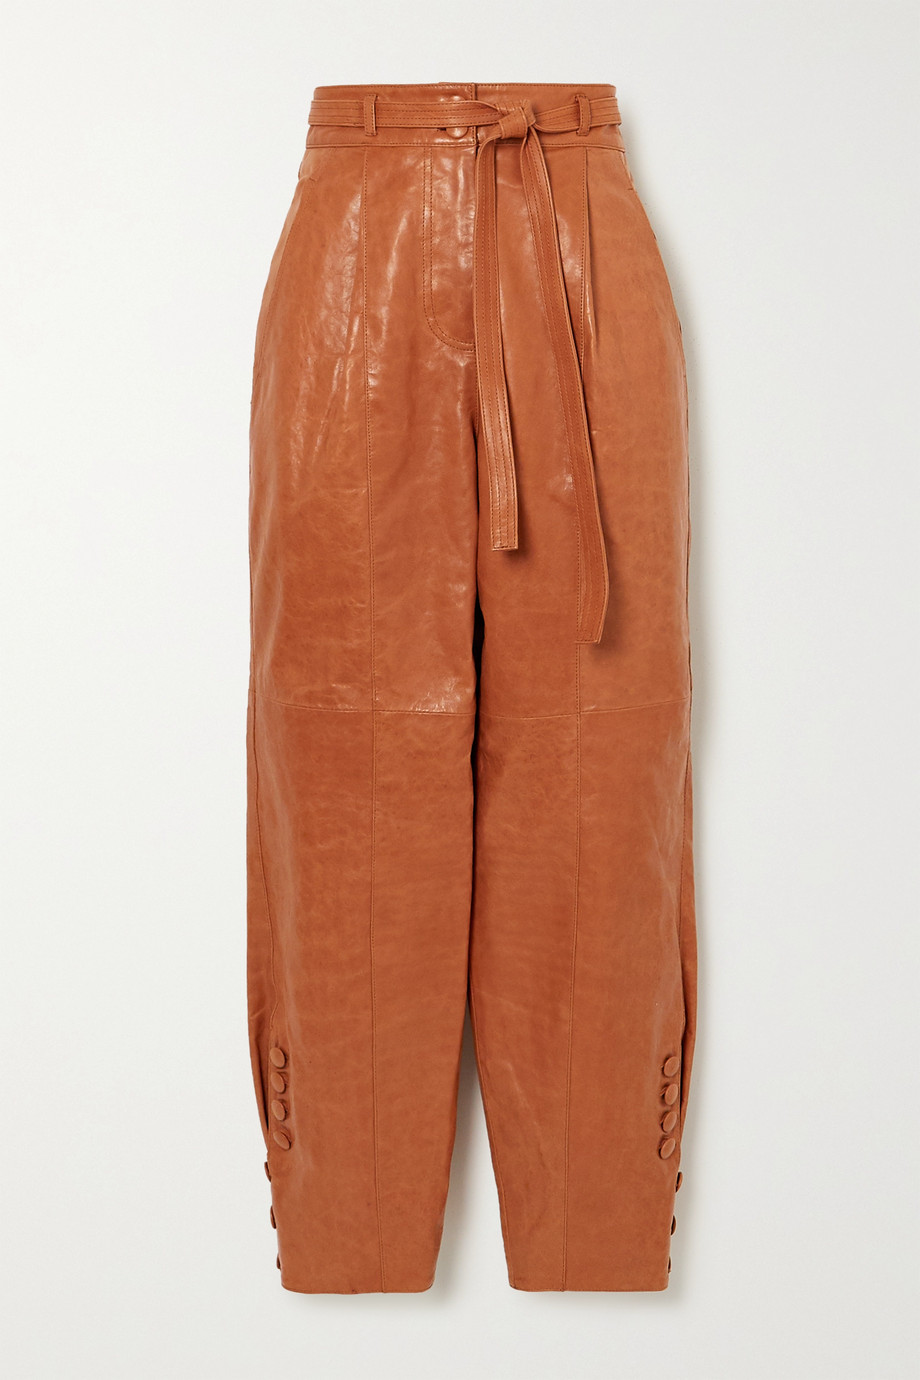 Ulla Johnson Navona belted leather tapered pants